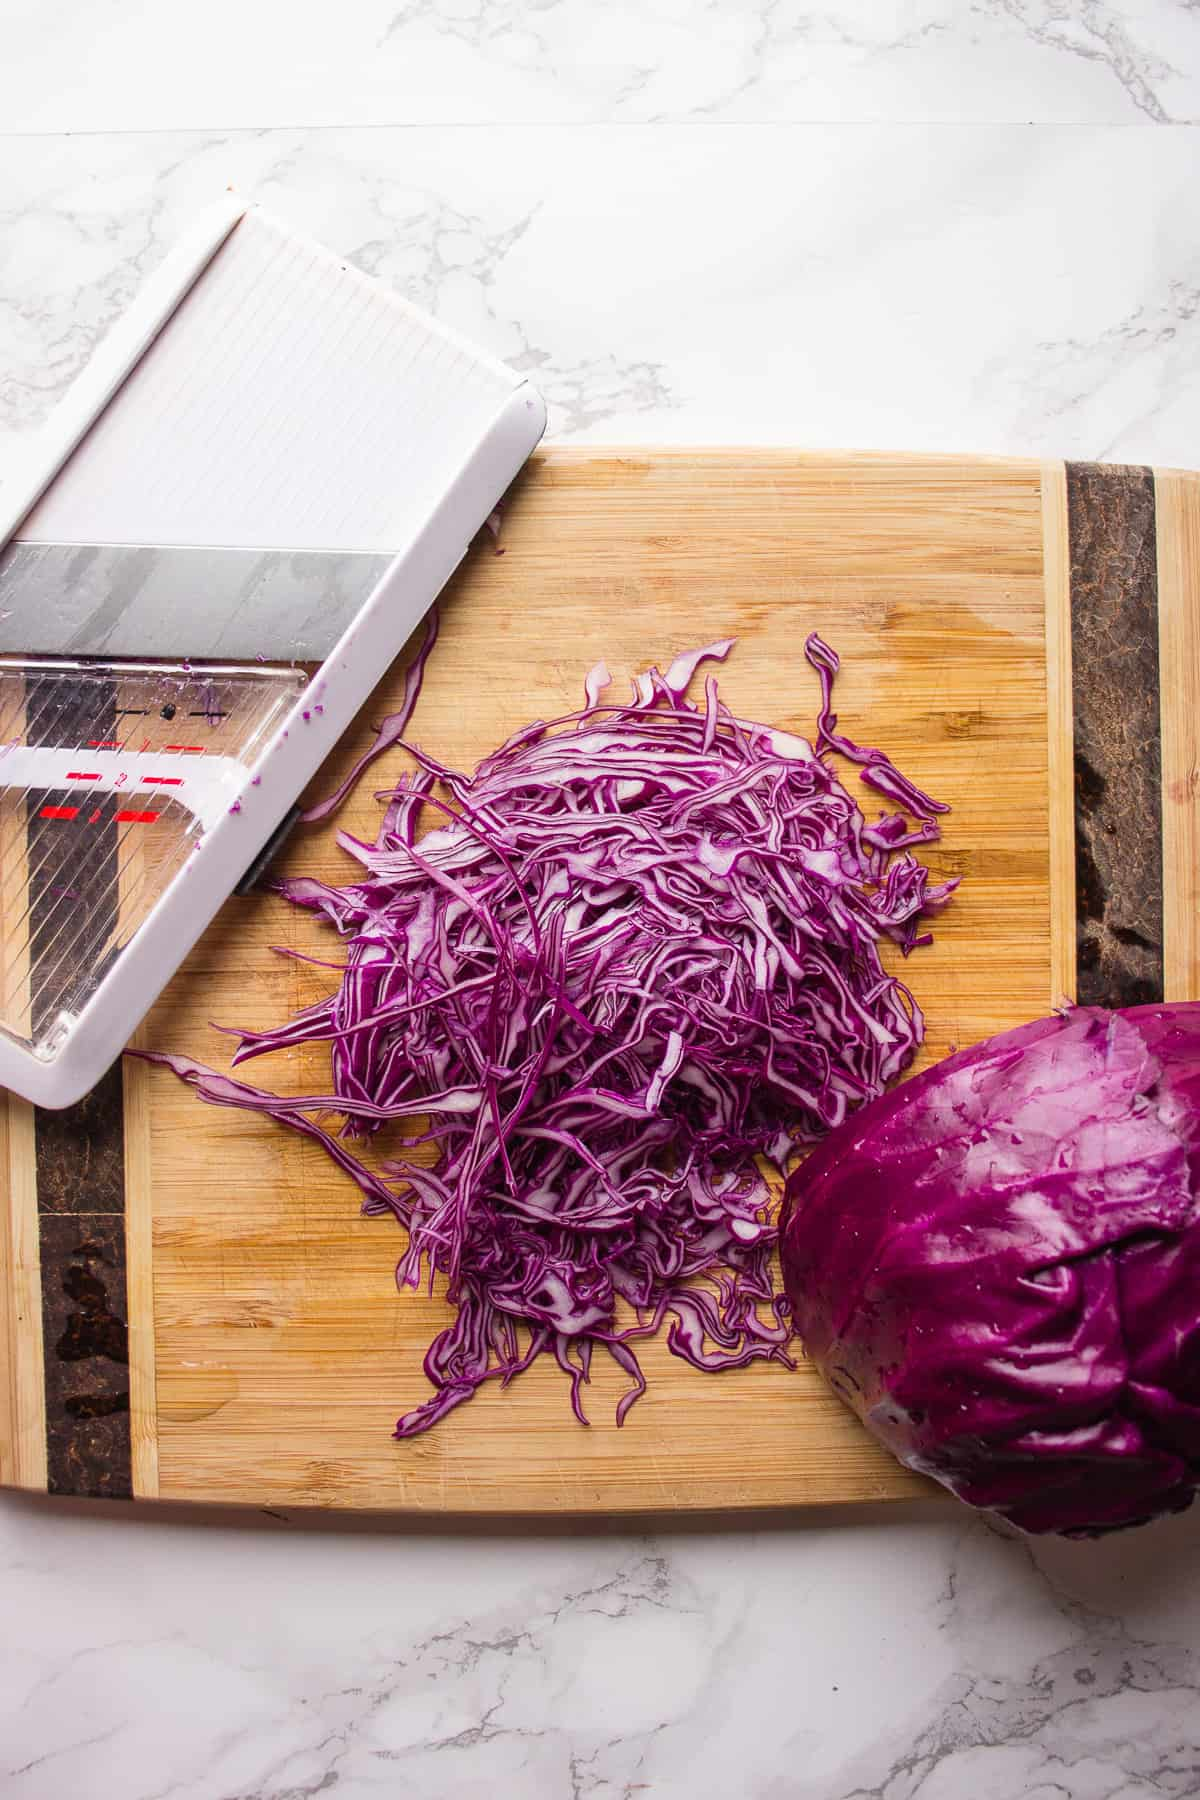 Slicing red cabbage for a slaw